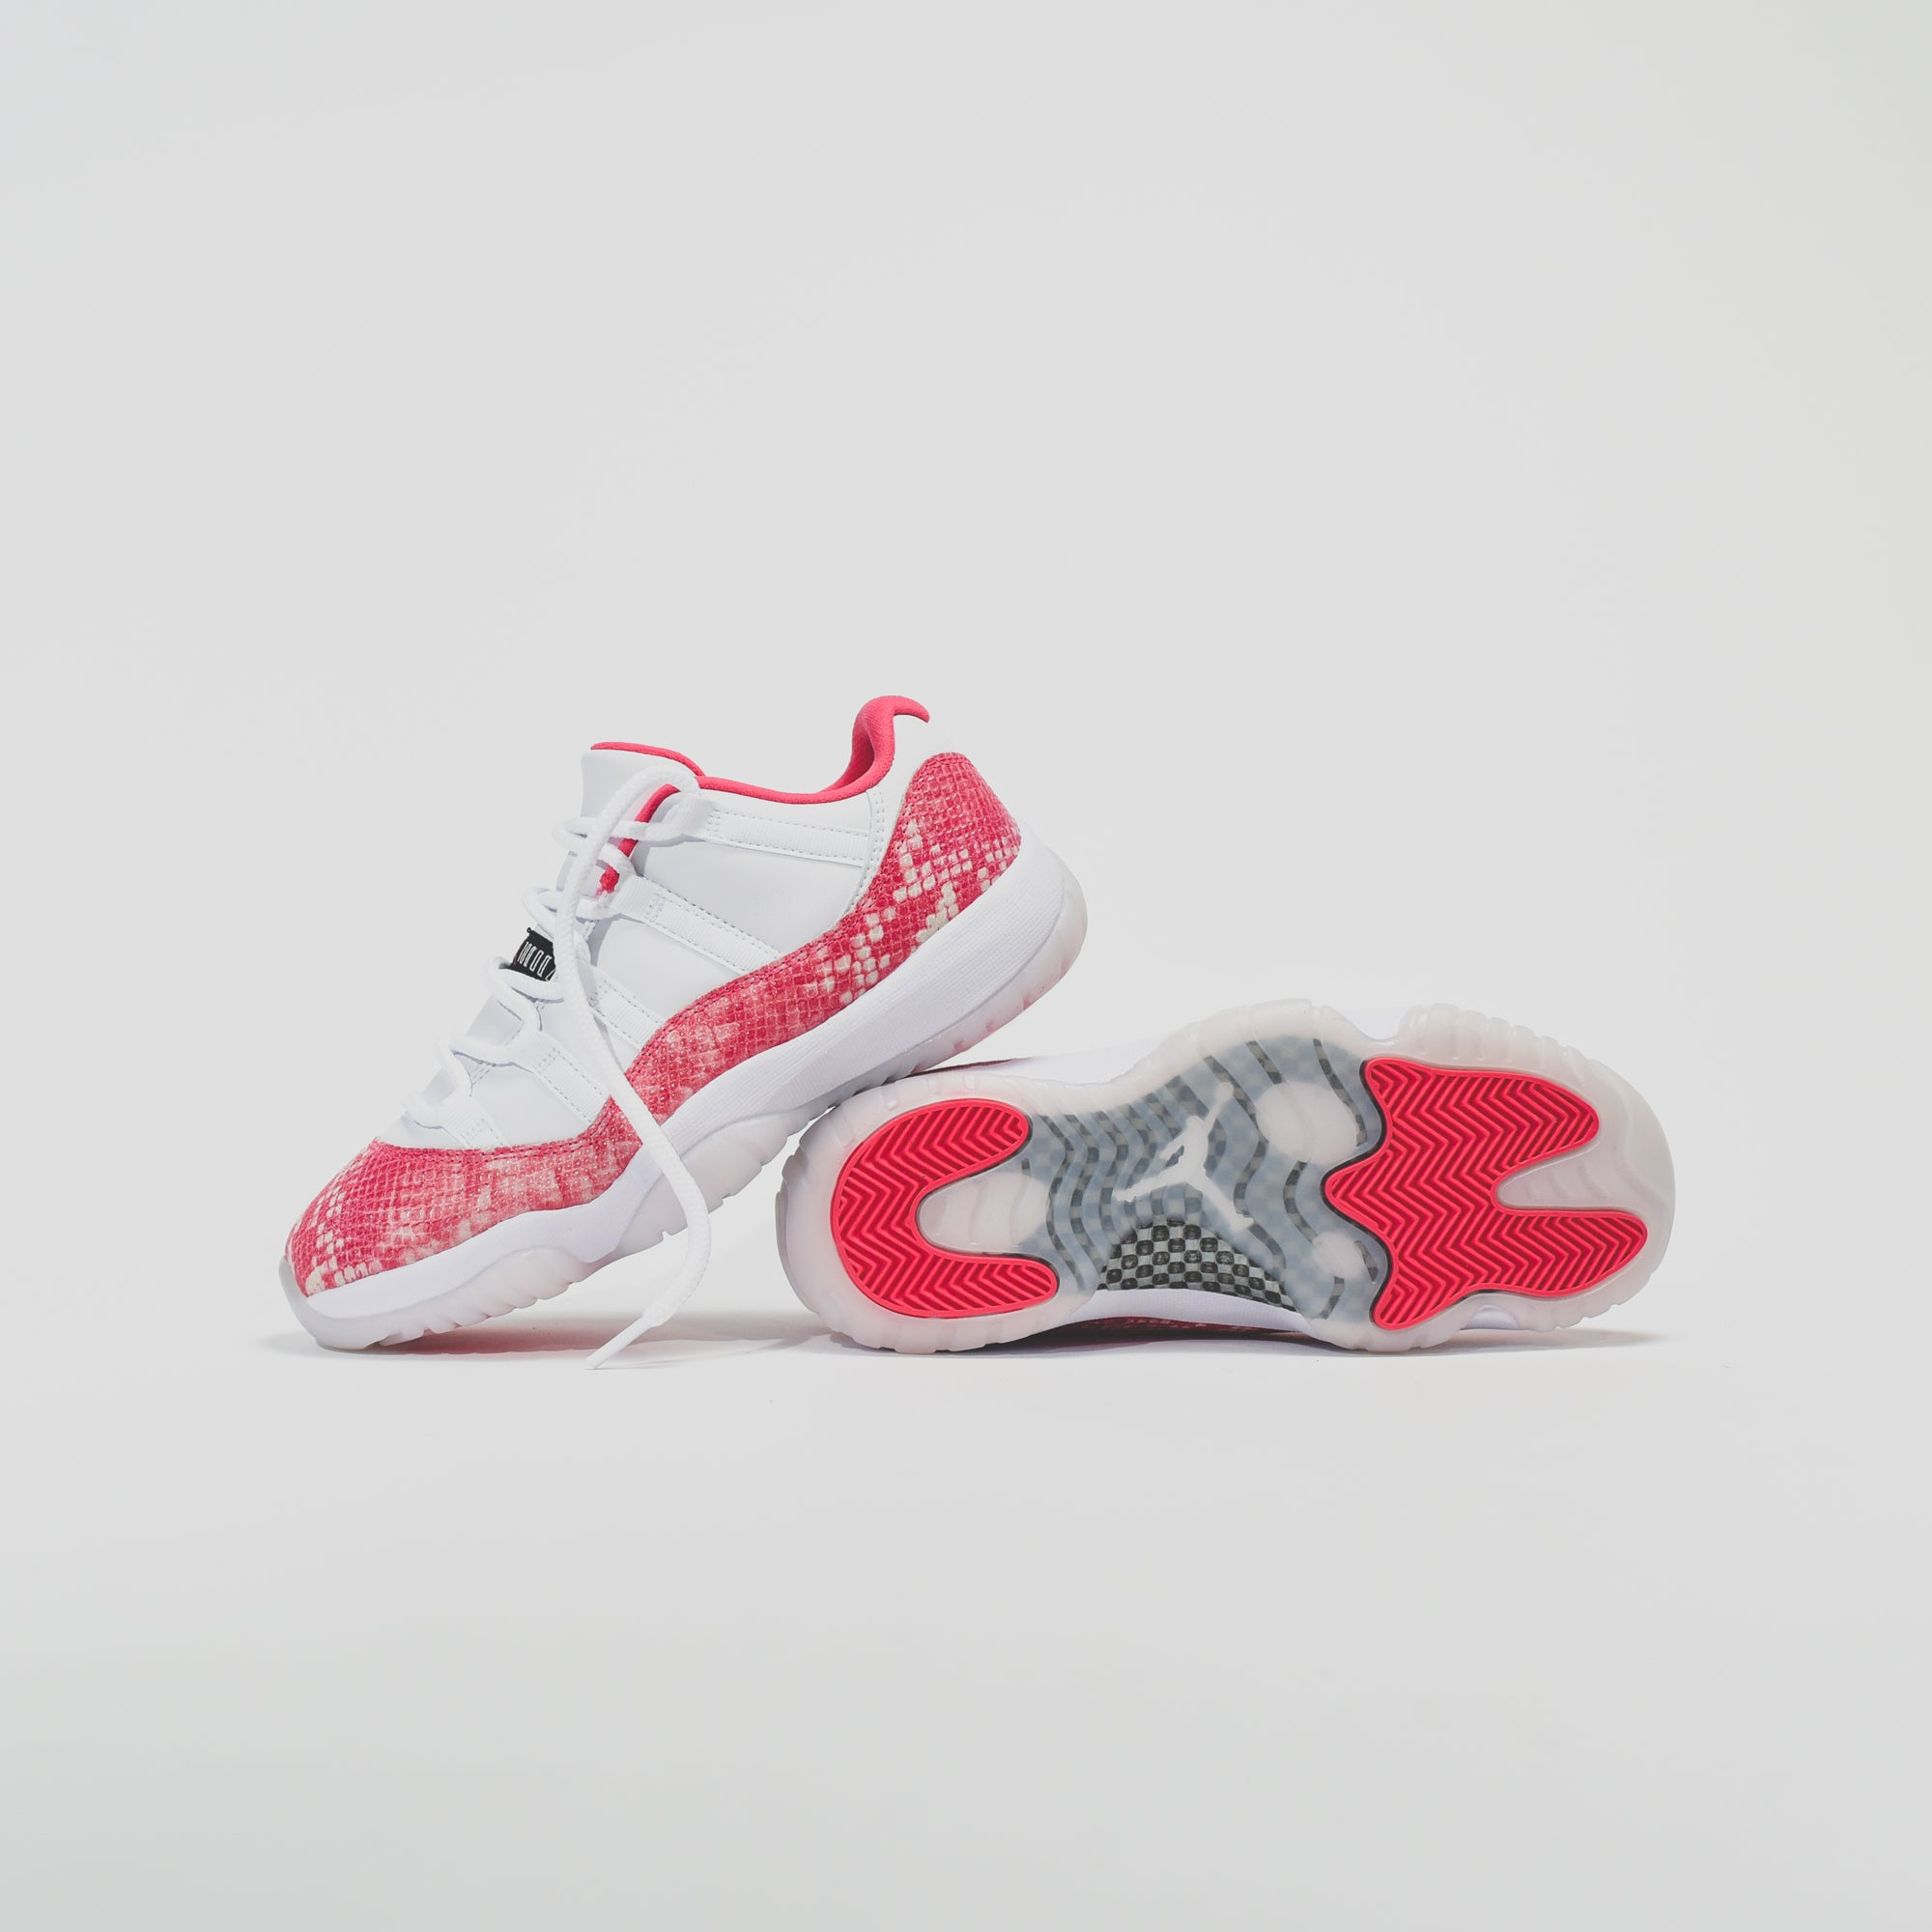 more photos 1c05c 1c088 Nike WMNS Air Jordan 11 Retro Low - White   Watermelon   Black. May 07,  2019. Shop Now. -3. -1